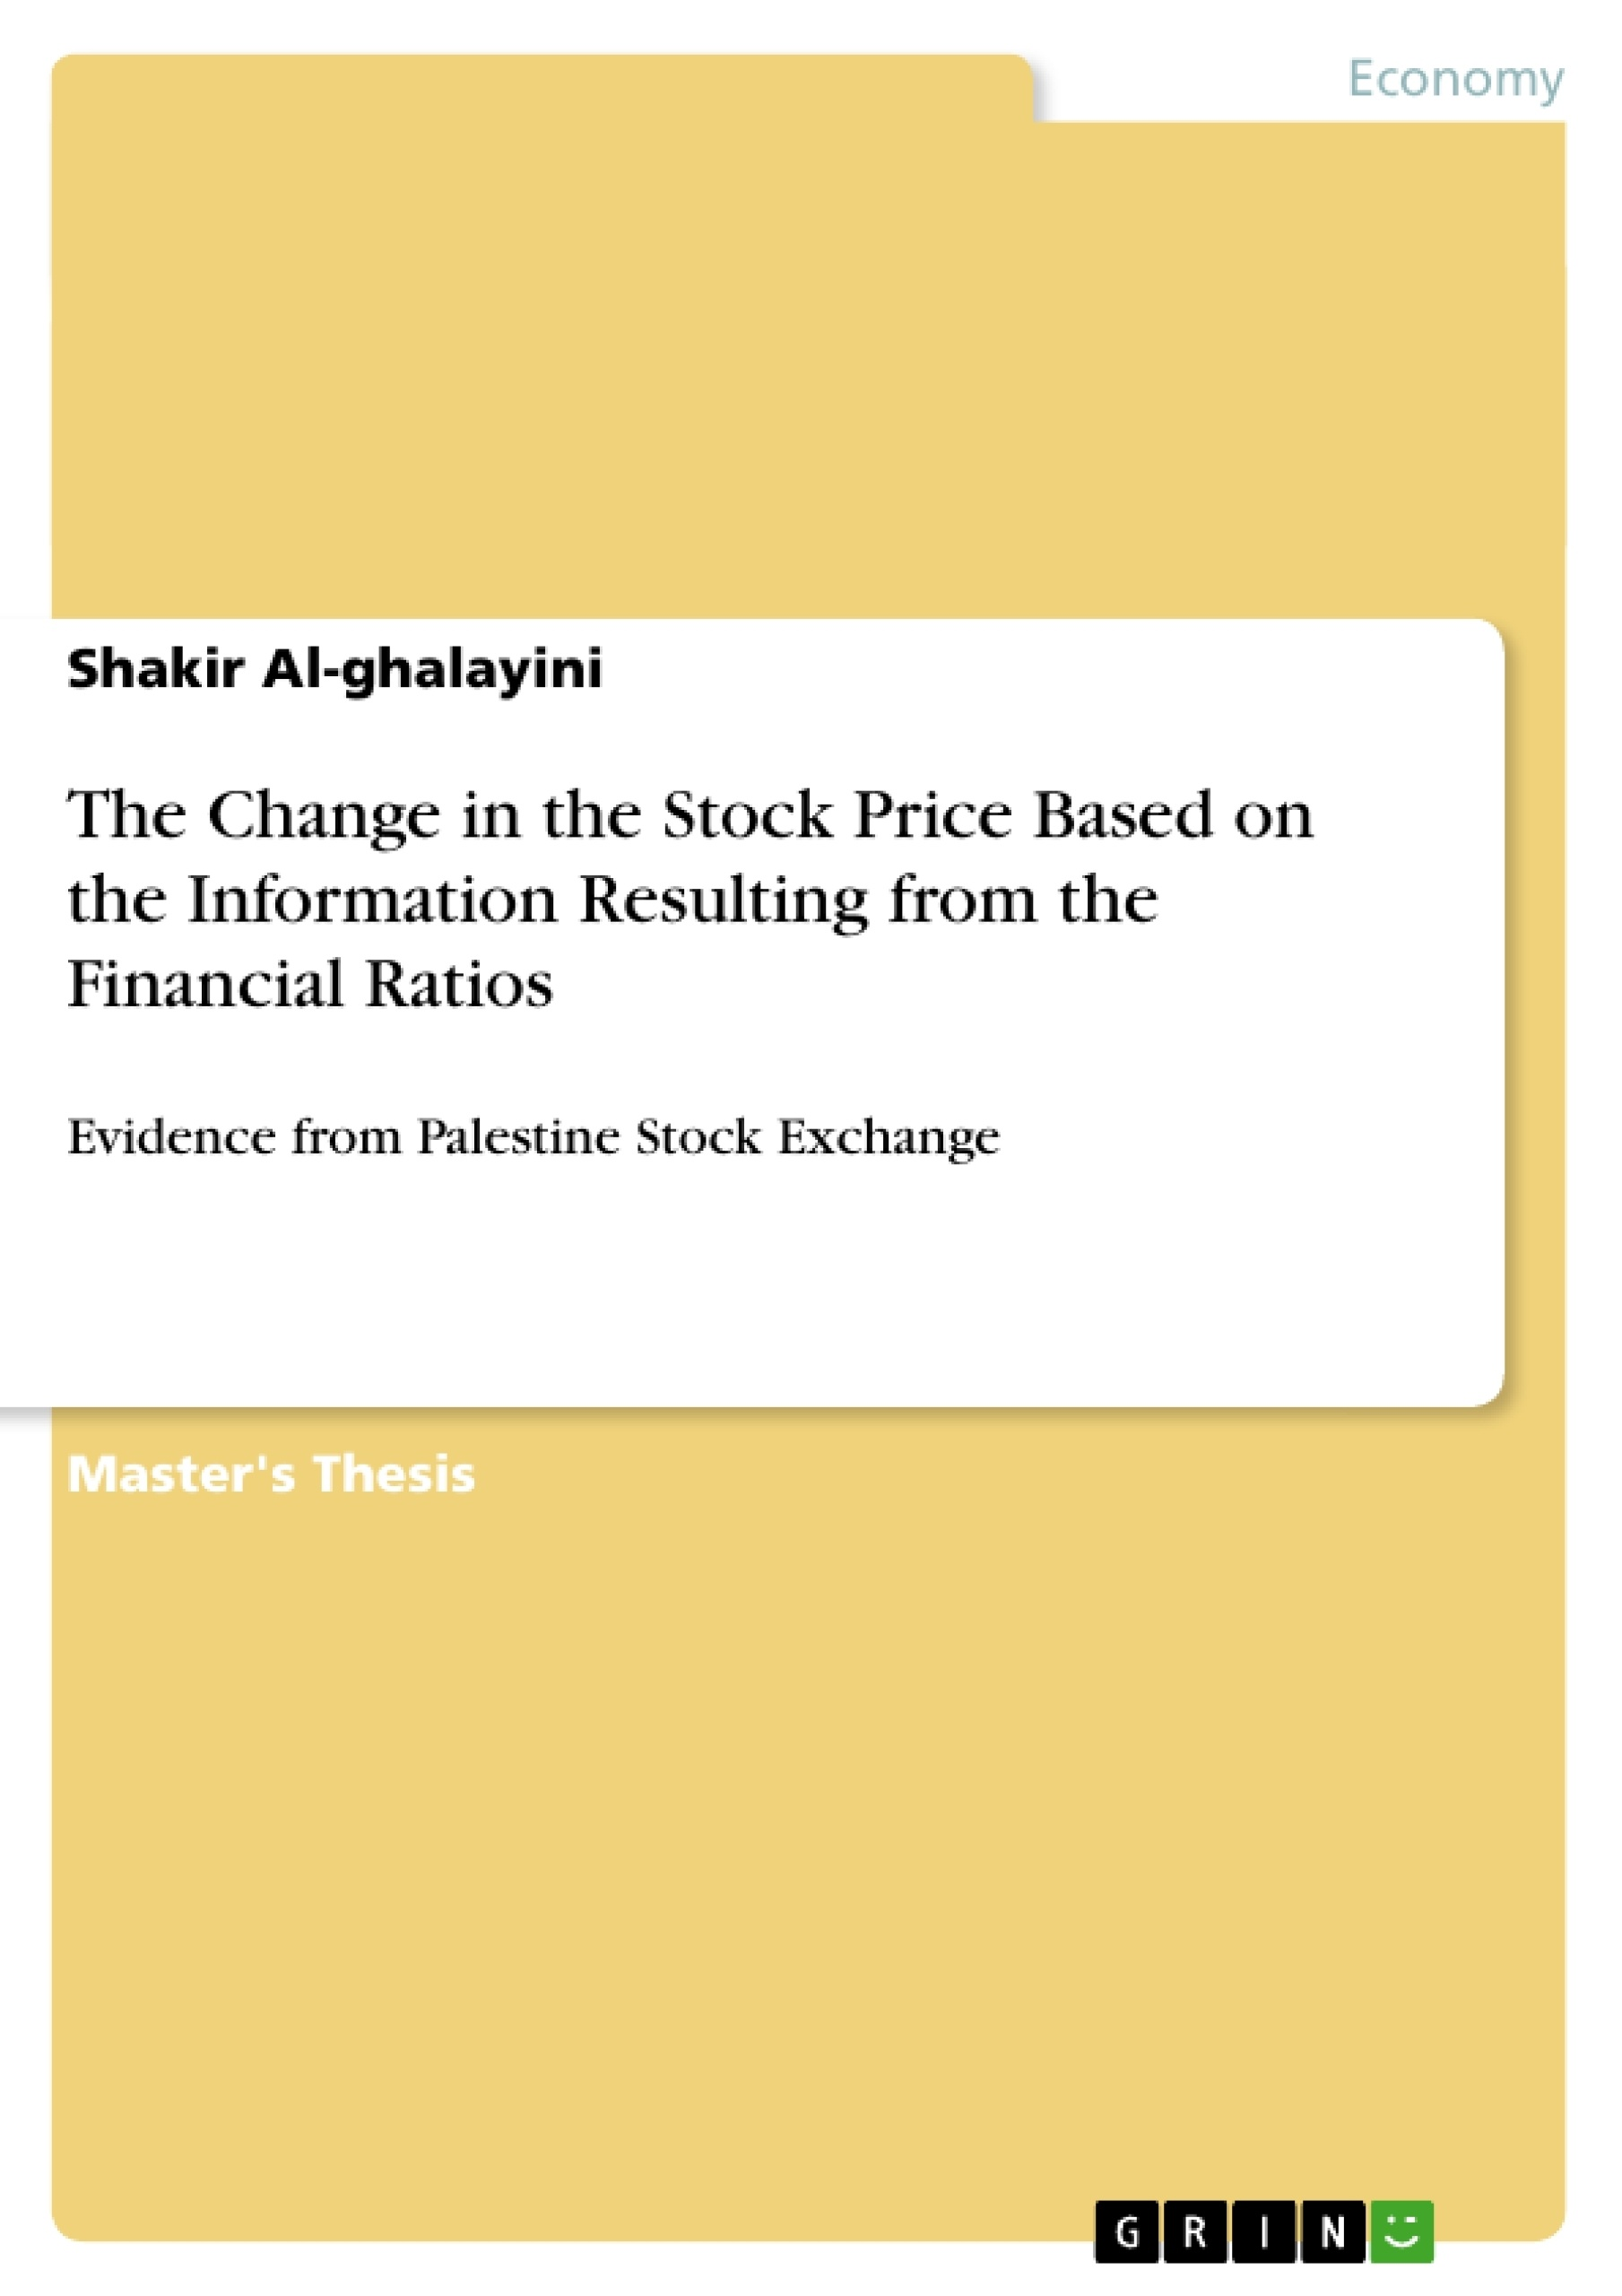 Title: The Change in the Stock Price Based on the Information Resulting from the Financial Ratios